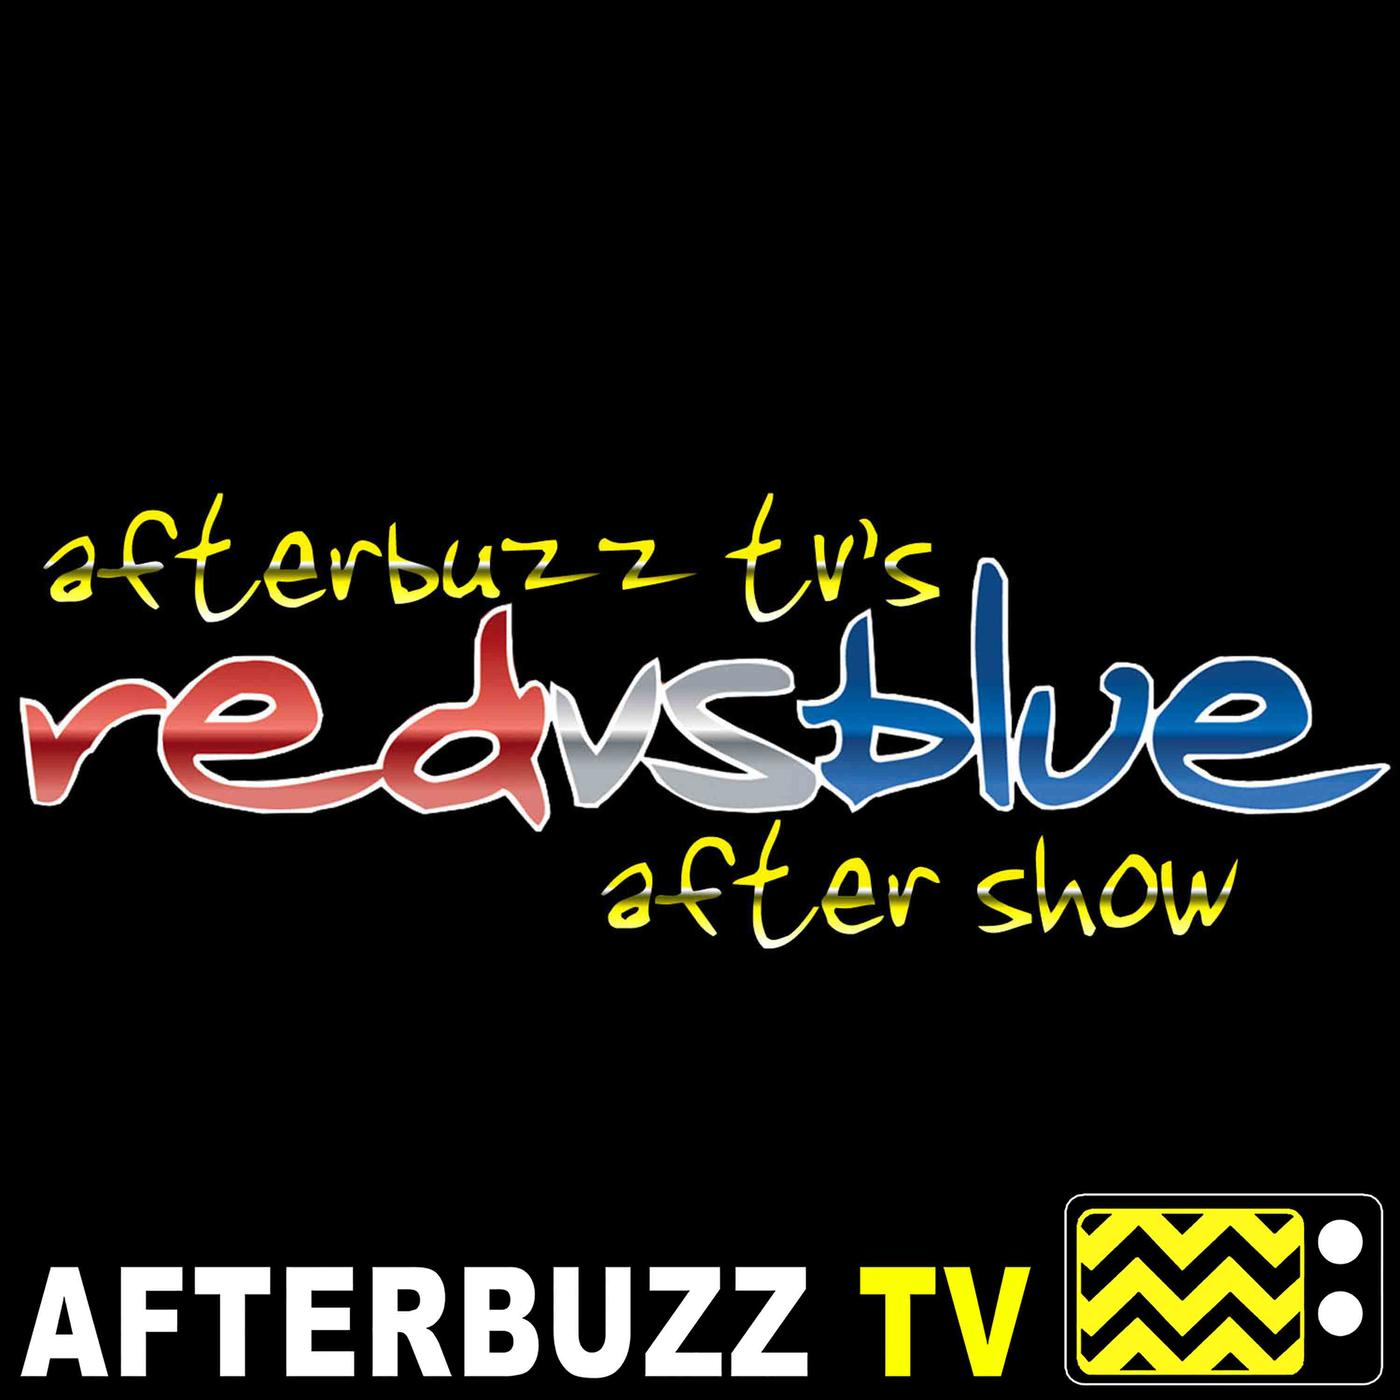 Red vs Blue Reviews and After Show - AfterBuzz TV (podcast